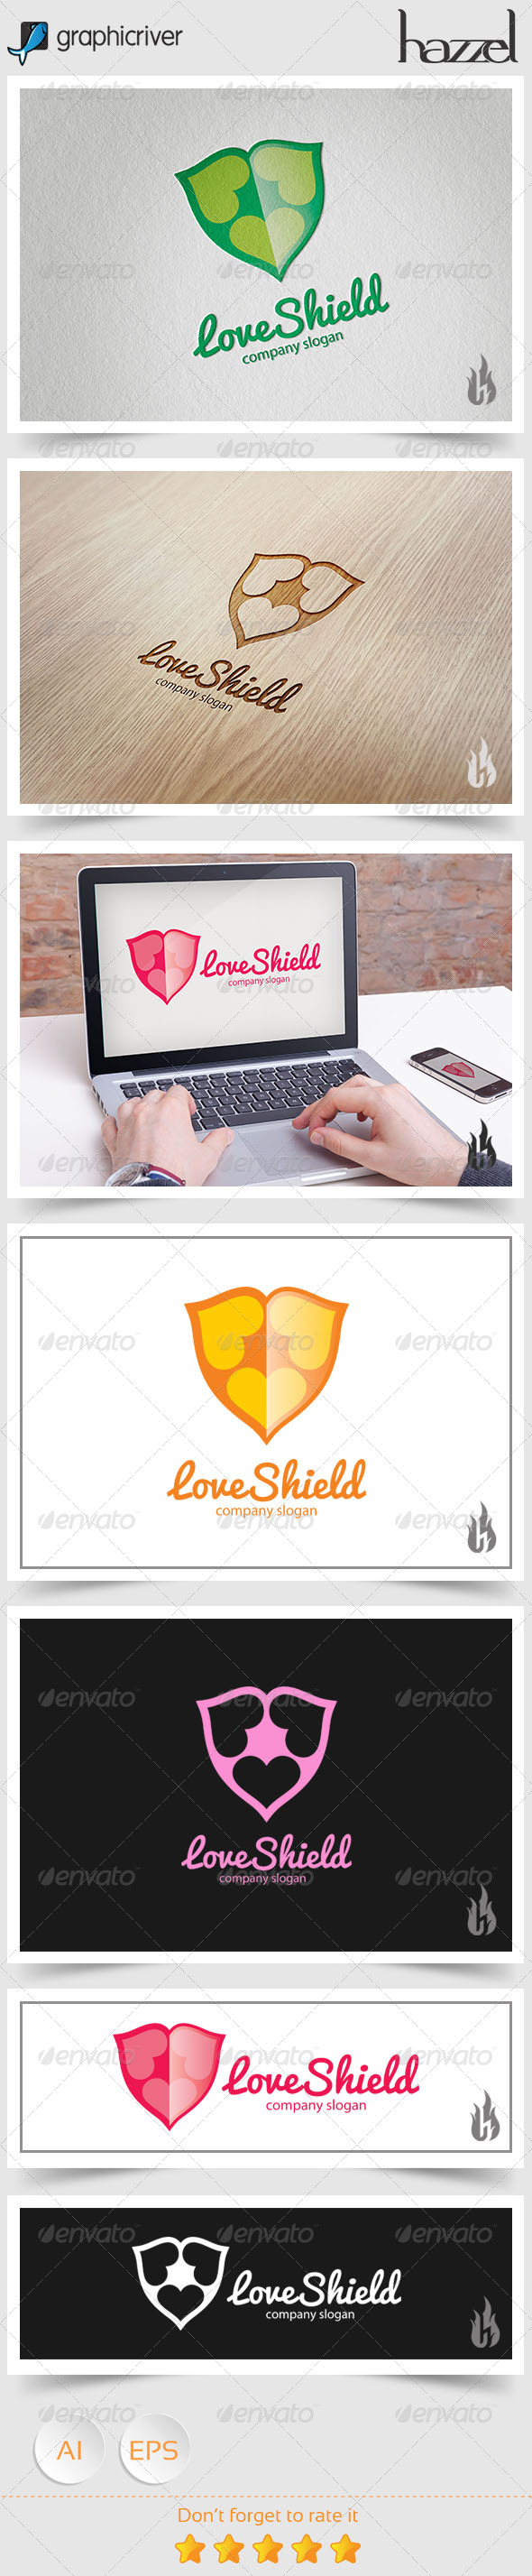 GraphicRiver Love Shield Logo 8739218